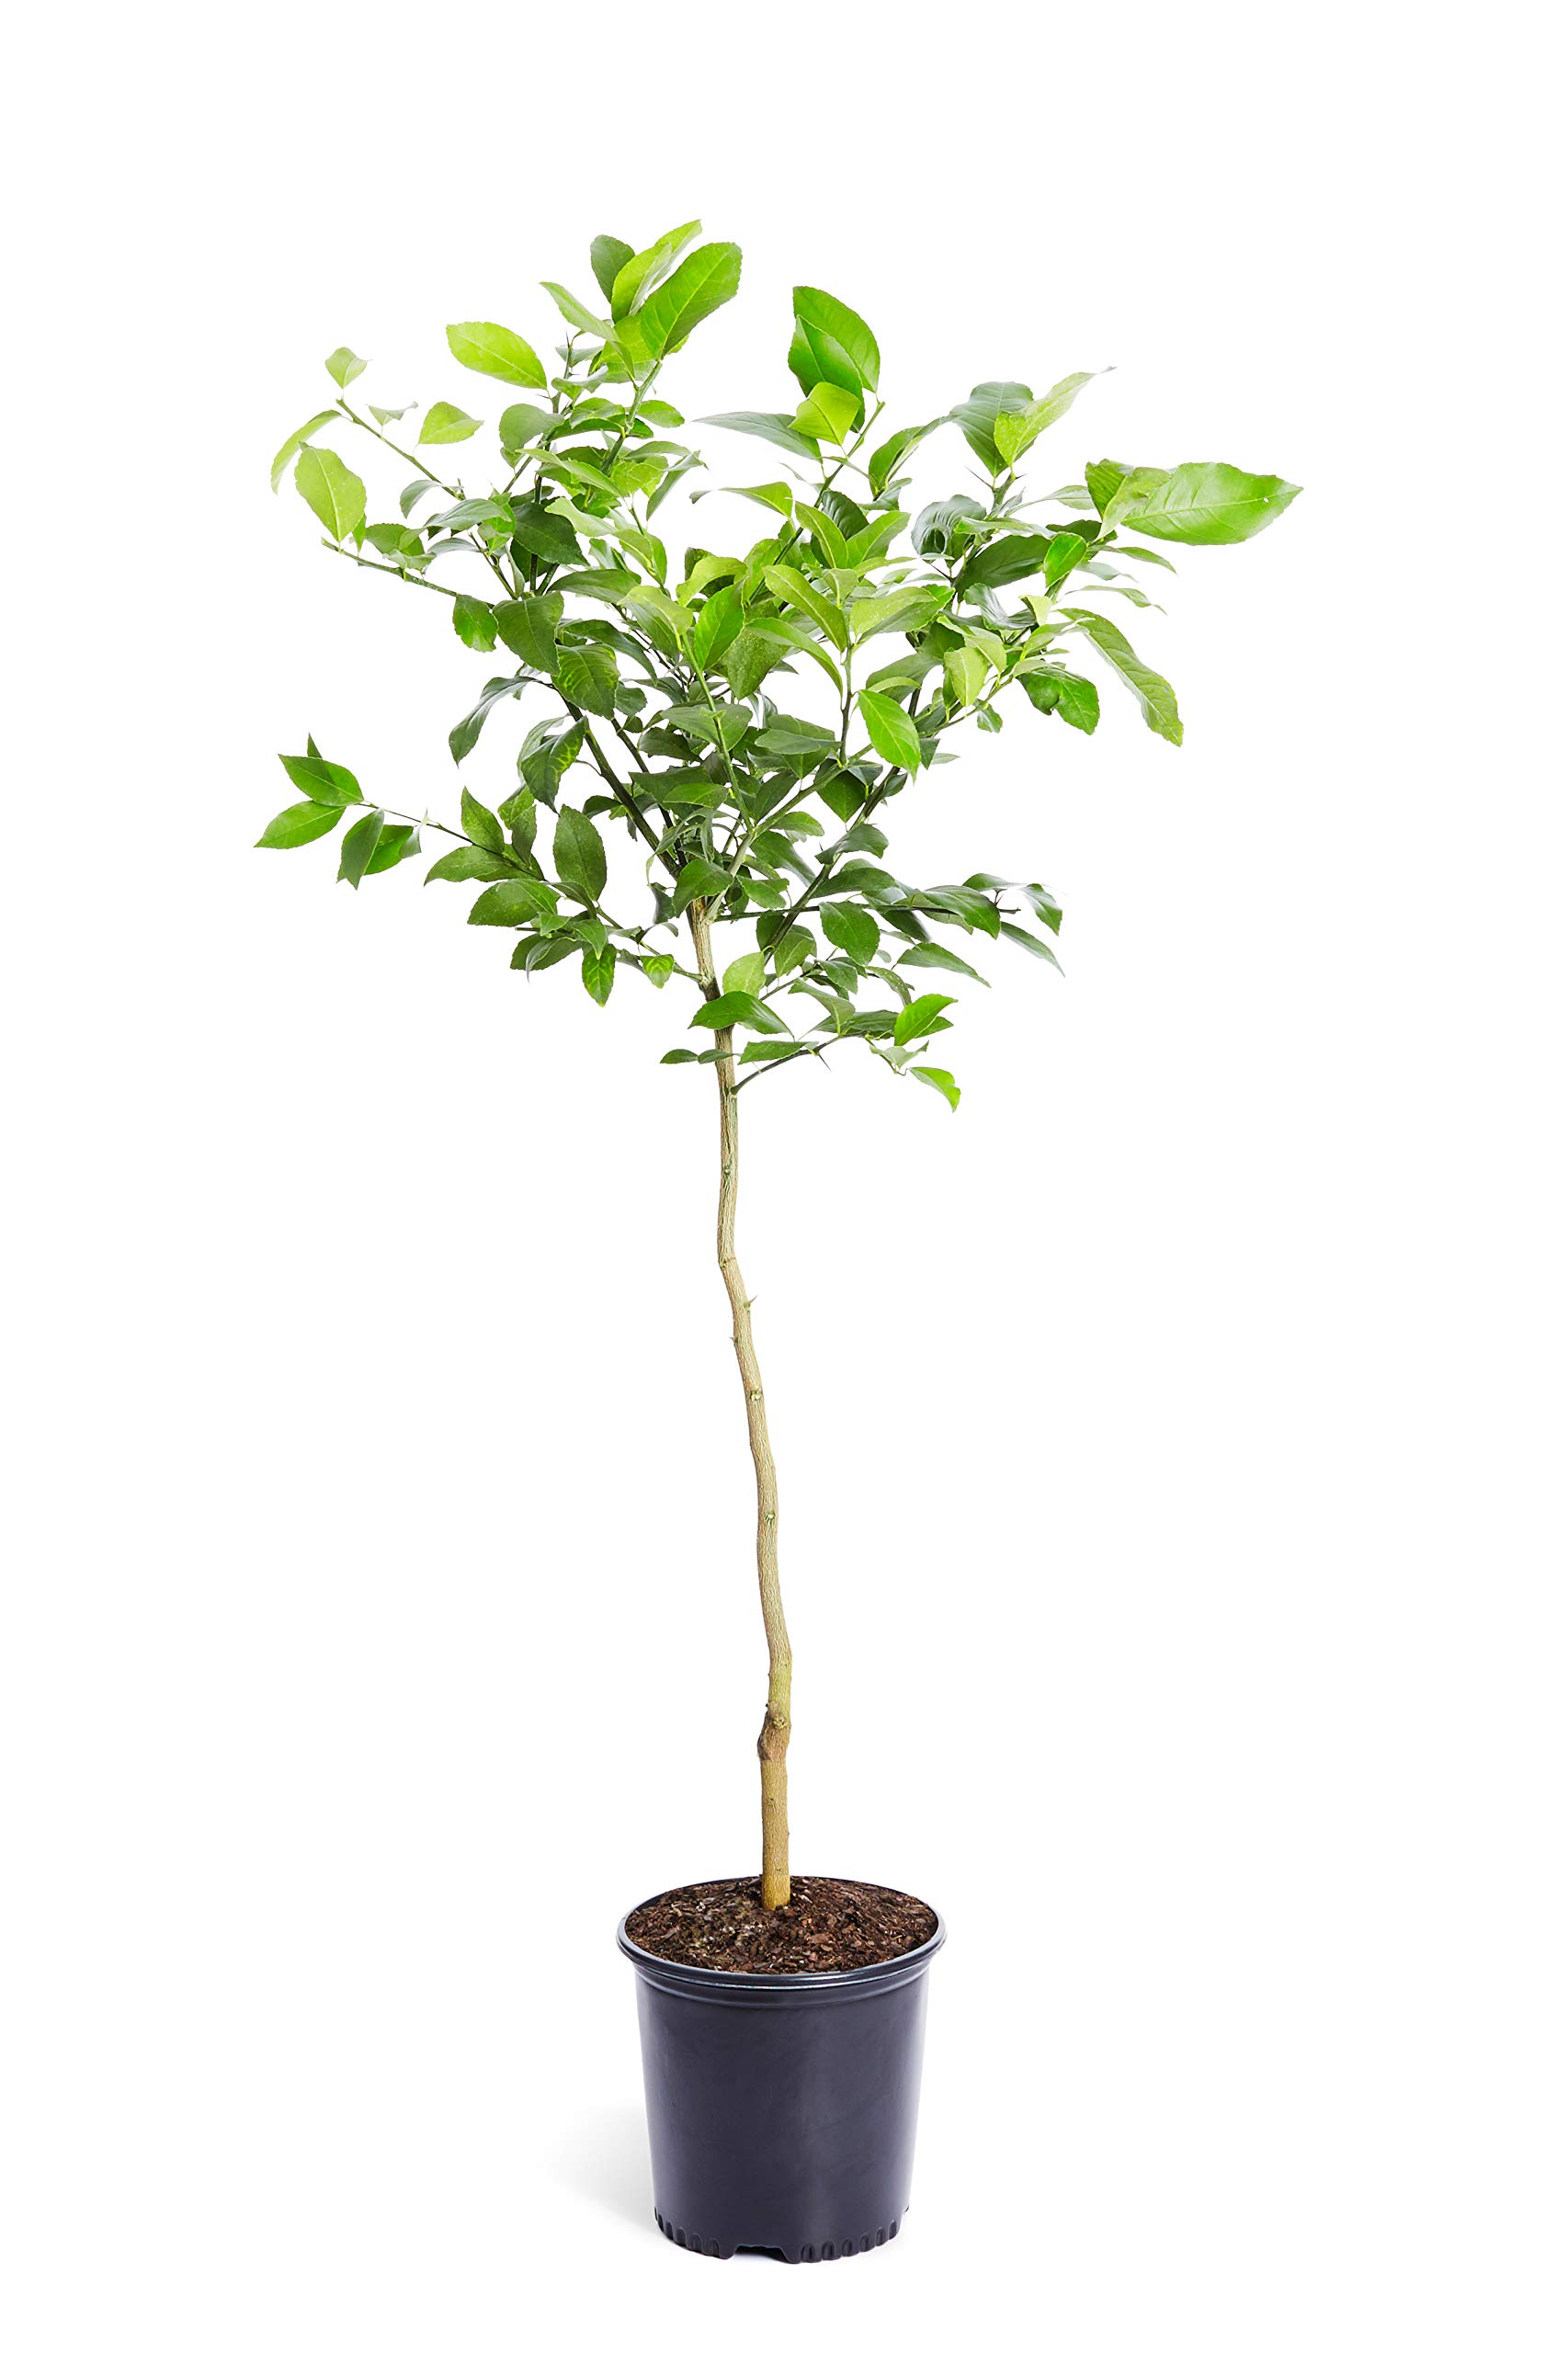 Improved Meyer Lemon Tree- Dwarf Fruit Trees - Indoor/Outdoor Live Potted Citrus Tree - 3-4 ft. - Cannot Ship to FL, CA, TX, LA or AZ